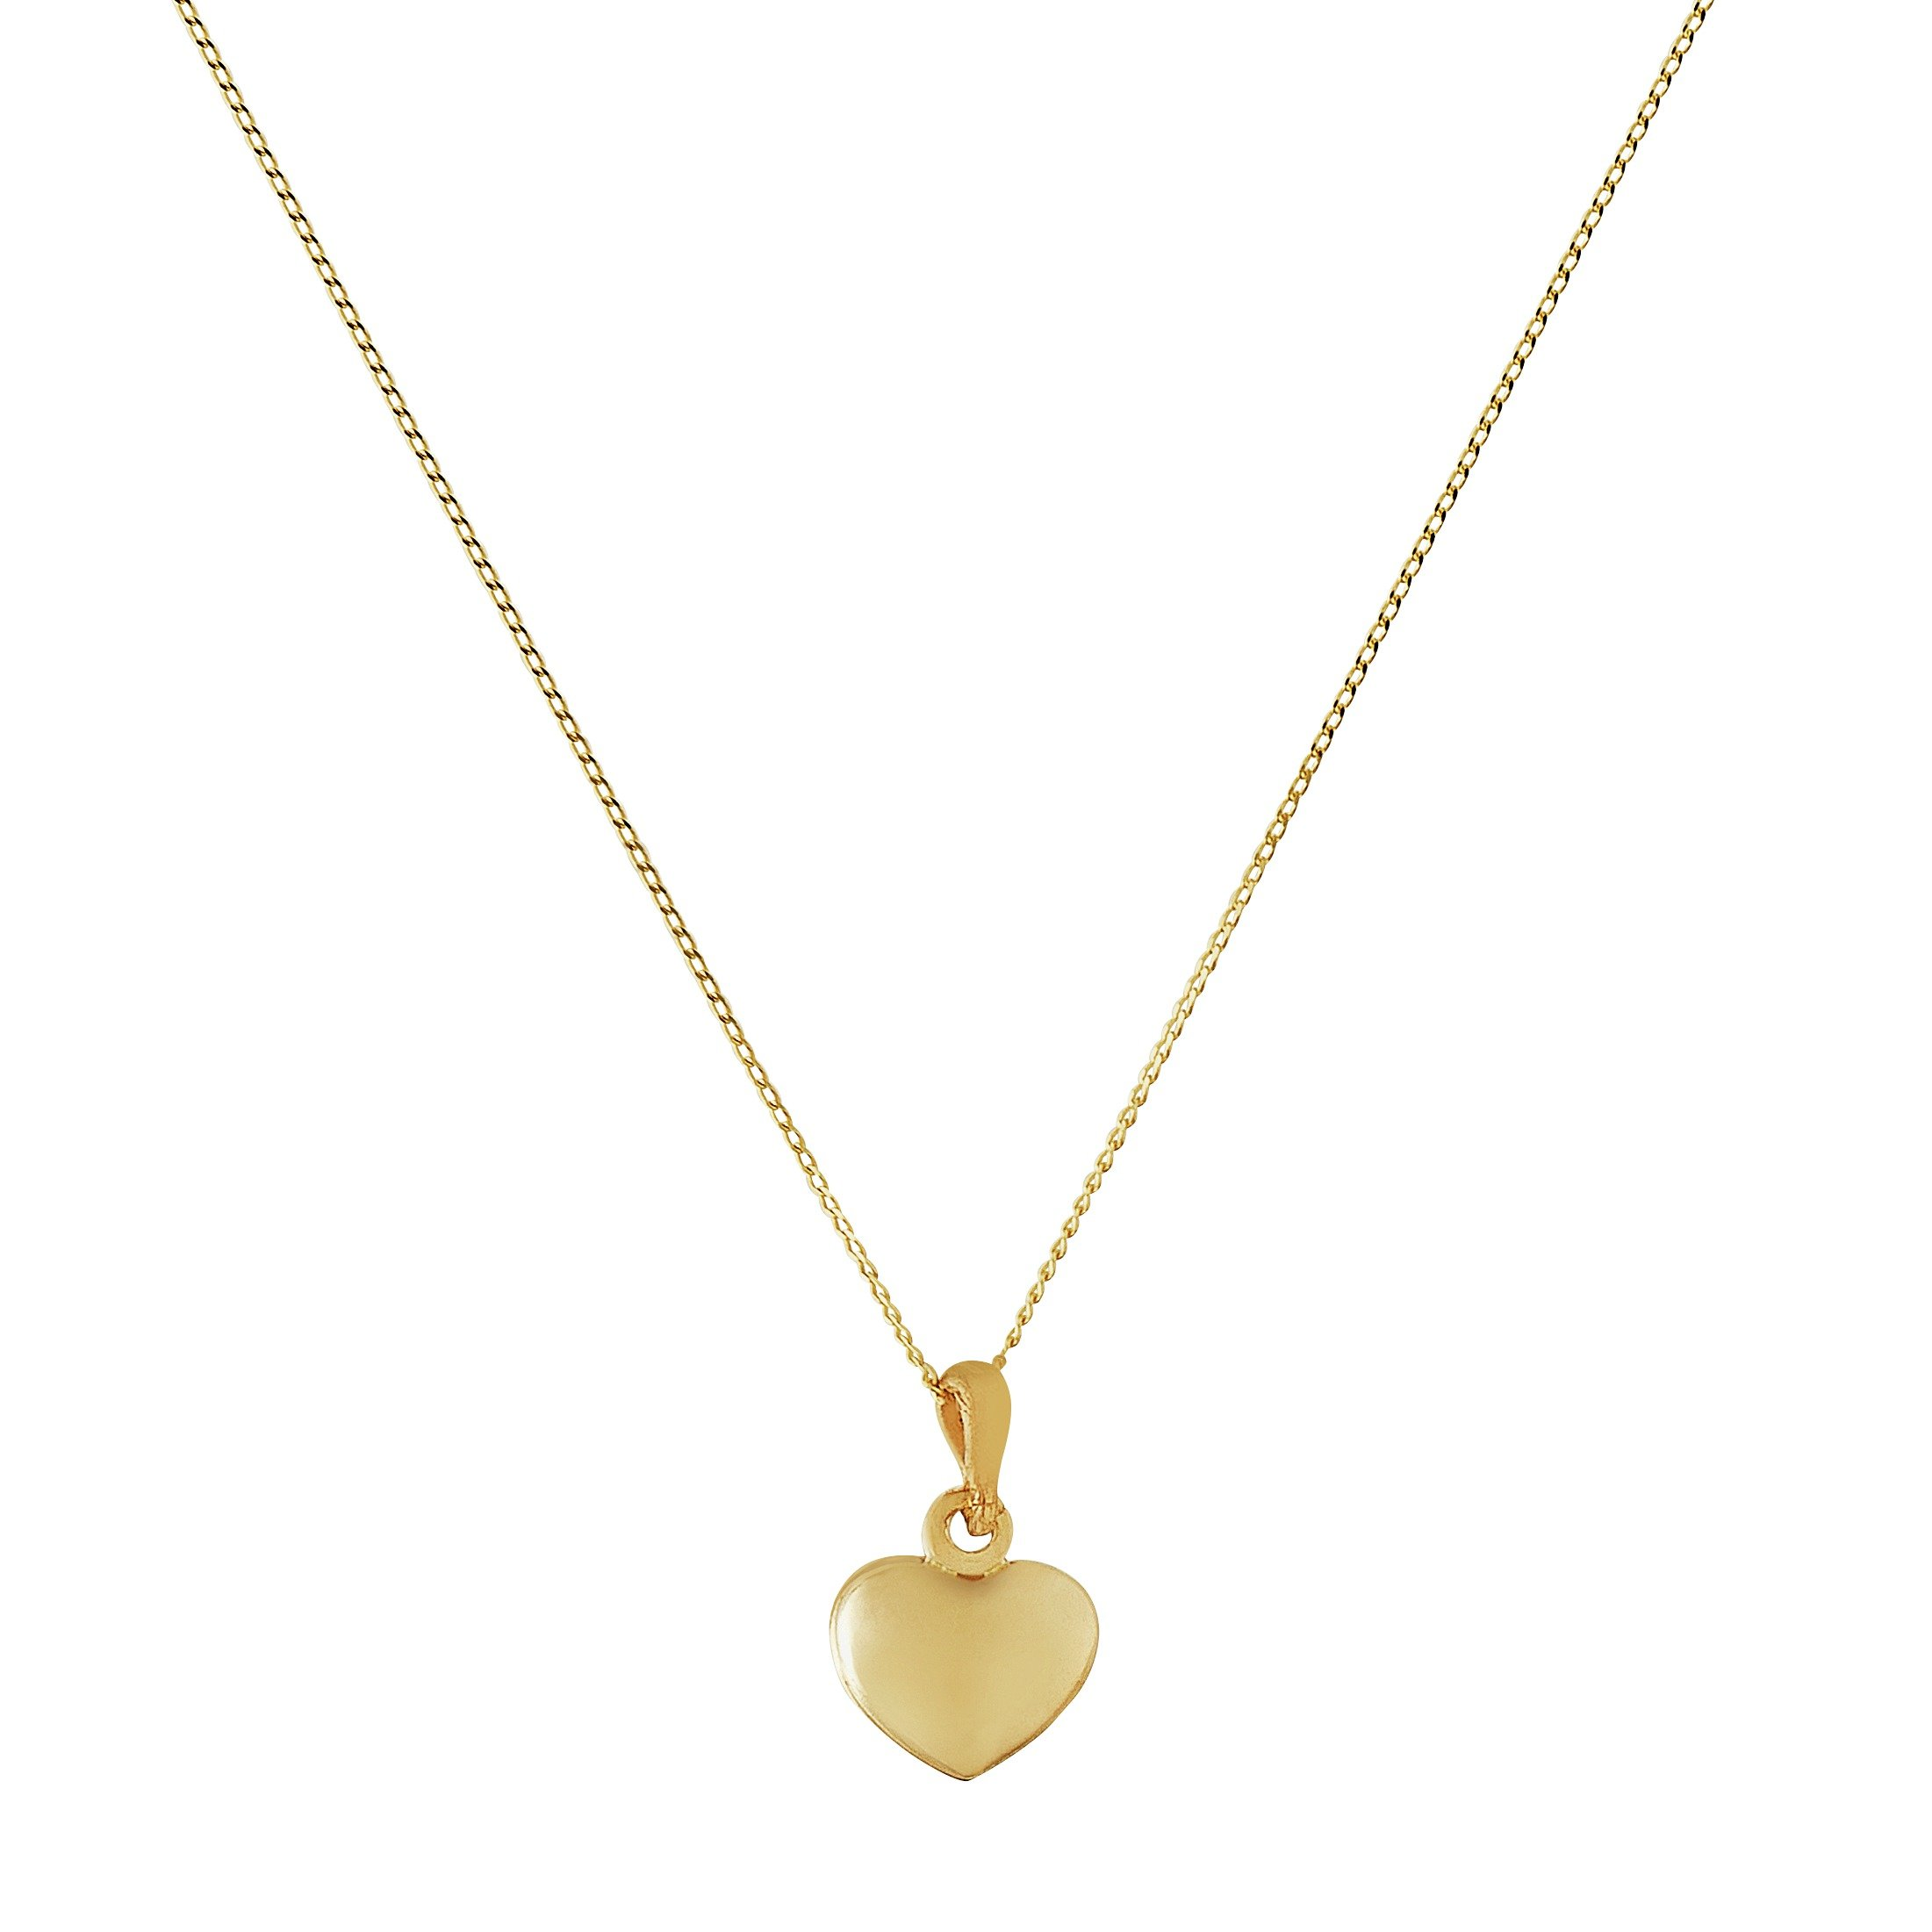 Revere 9ct Gold Heart Pendant 16 Inch Necklace